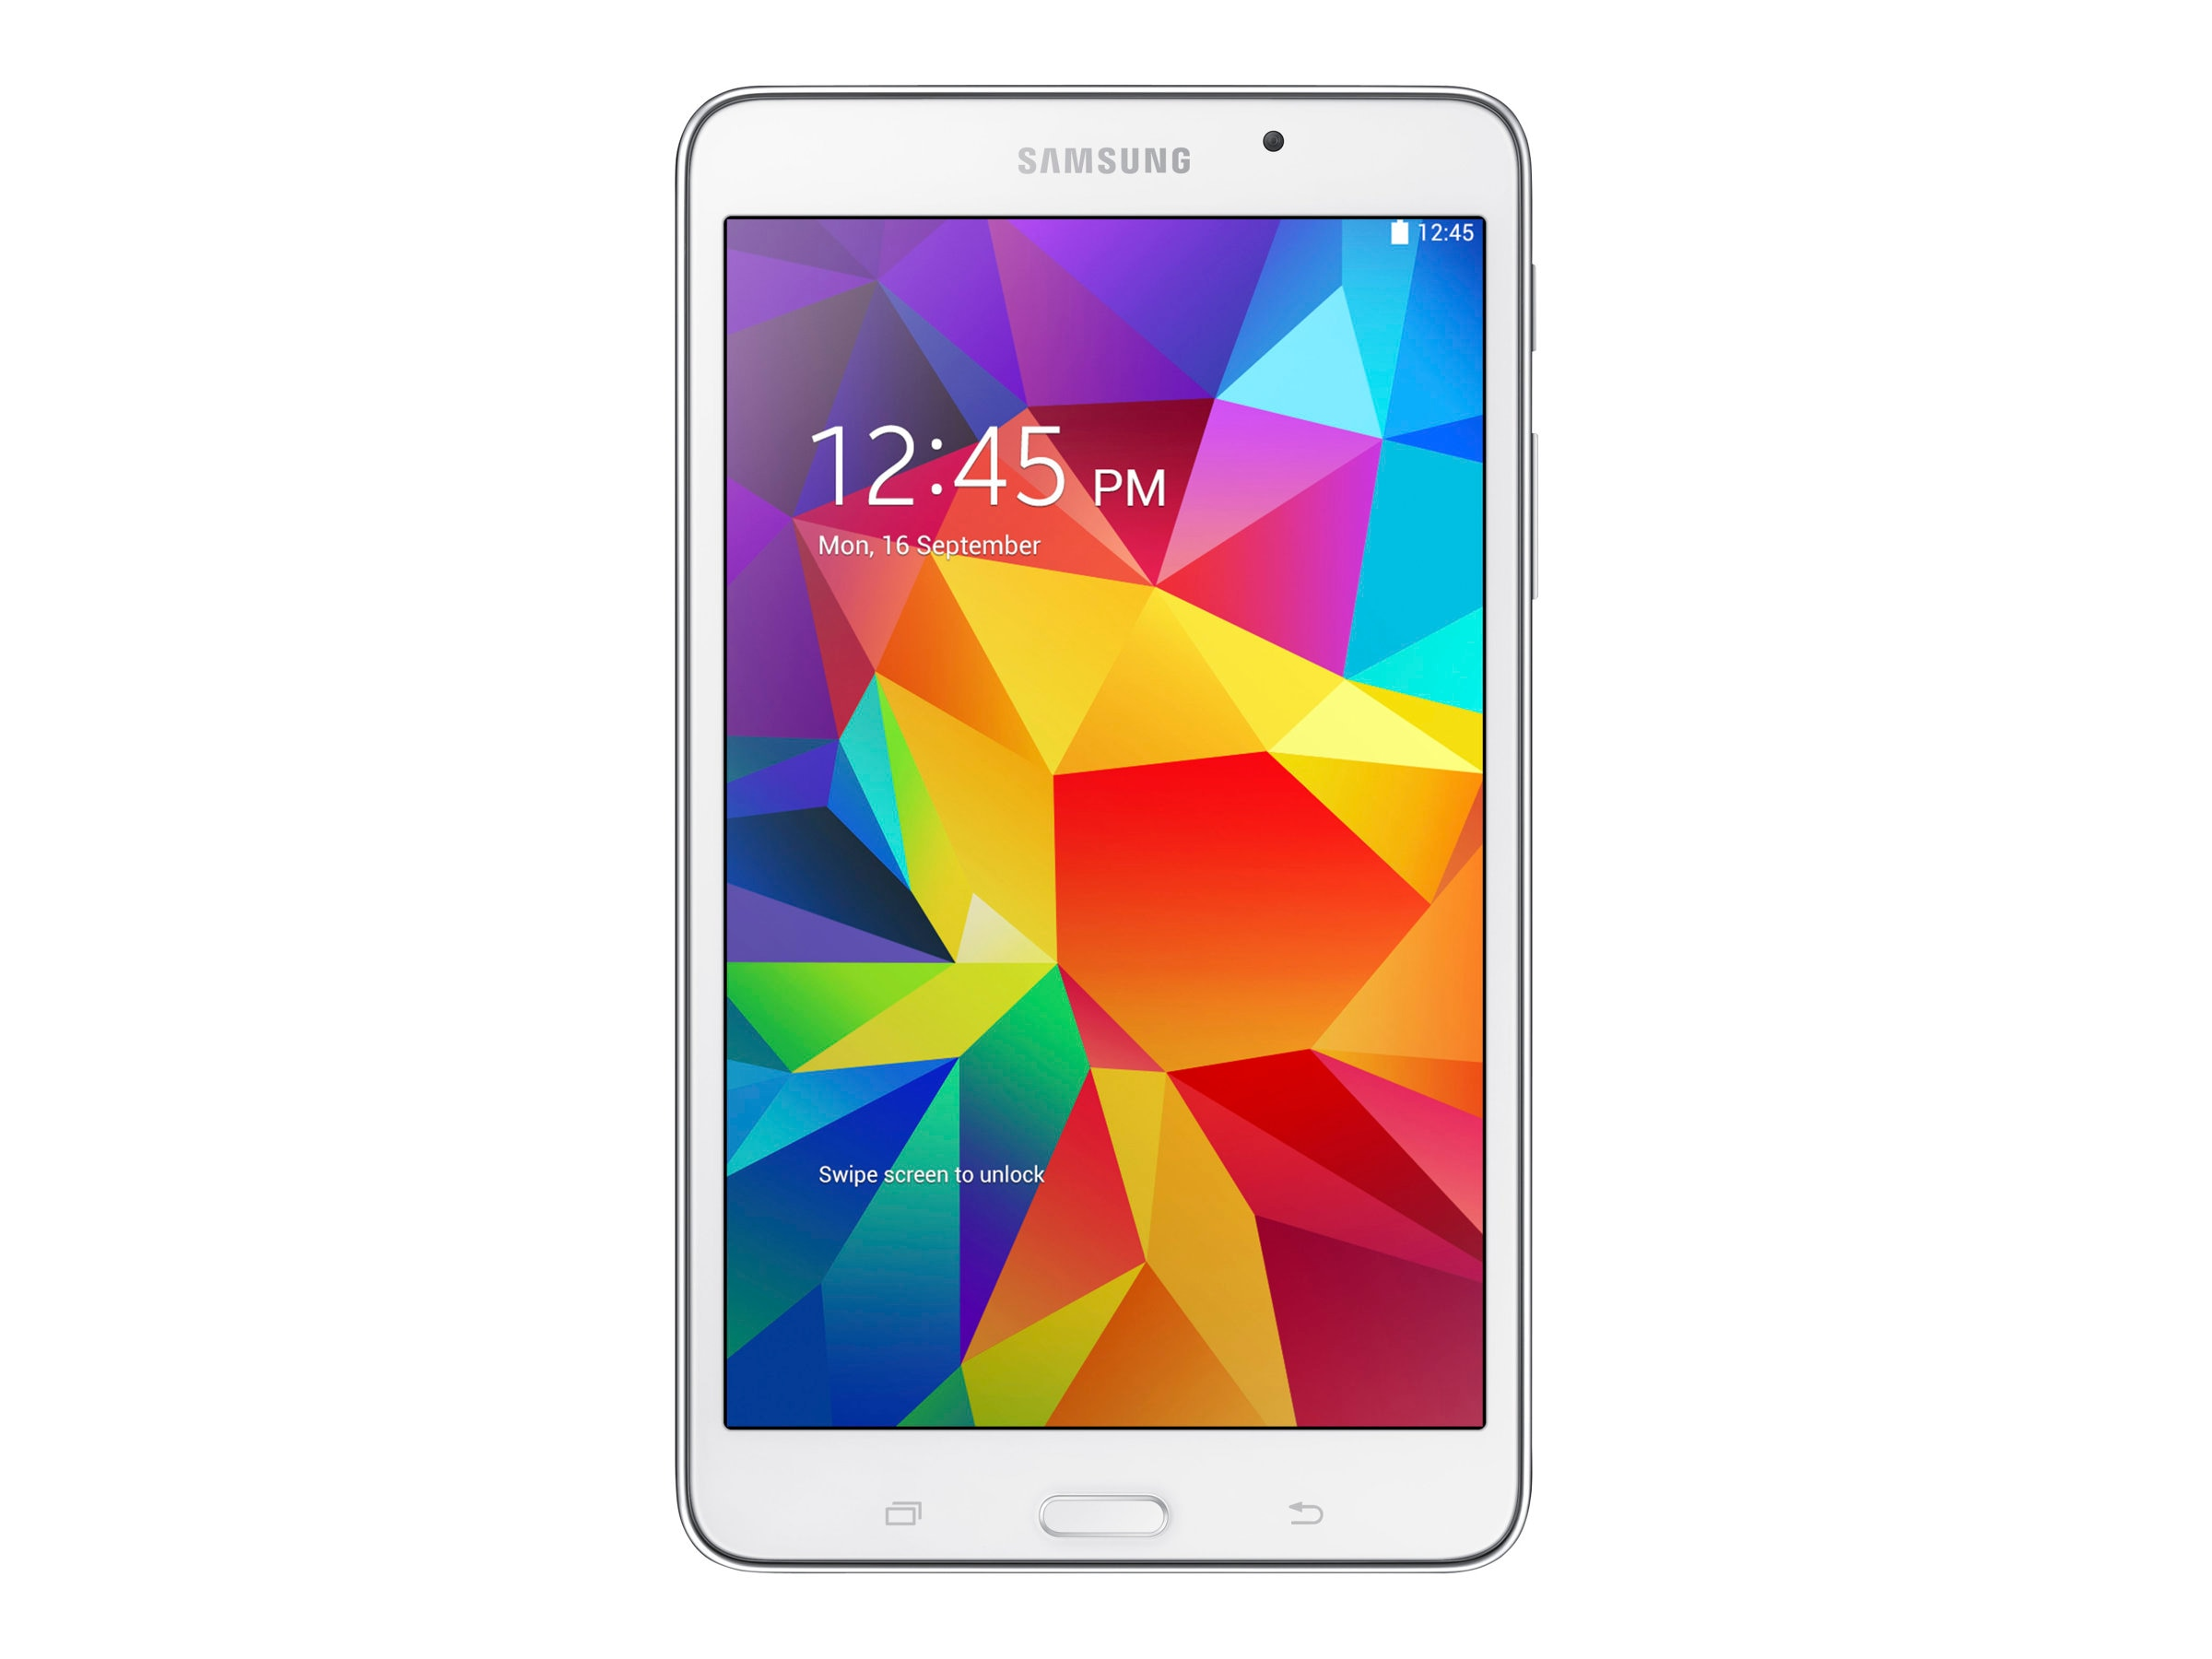 Samsung Galaxy Tab 4 1.2GHz processor Android 4.4 (KitKat), SM-T230NZWAXAR, 17054697, Tablets